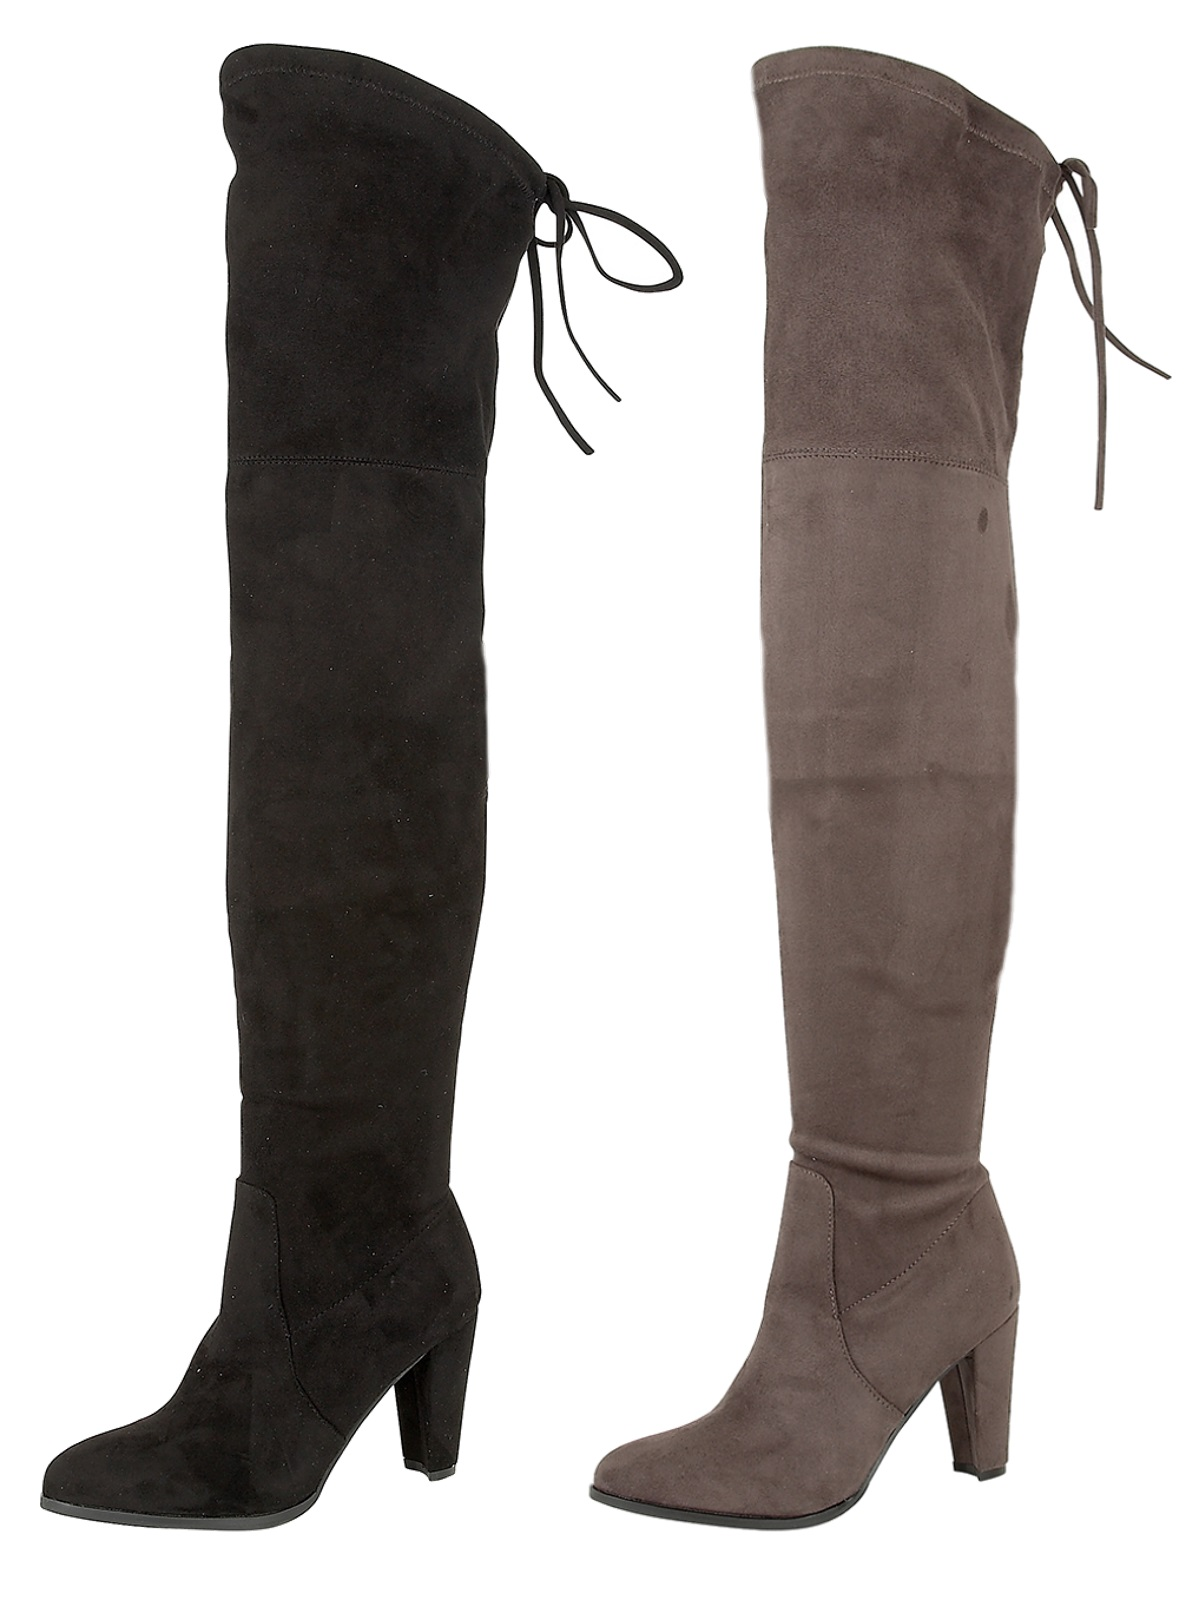 womens faux suede thigh high boots high heels adjustable